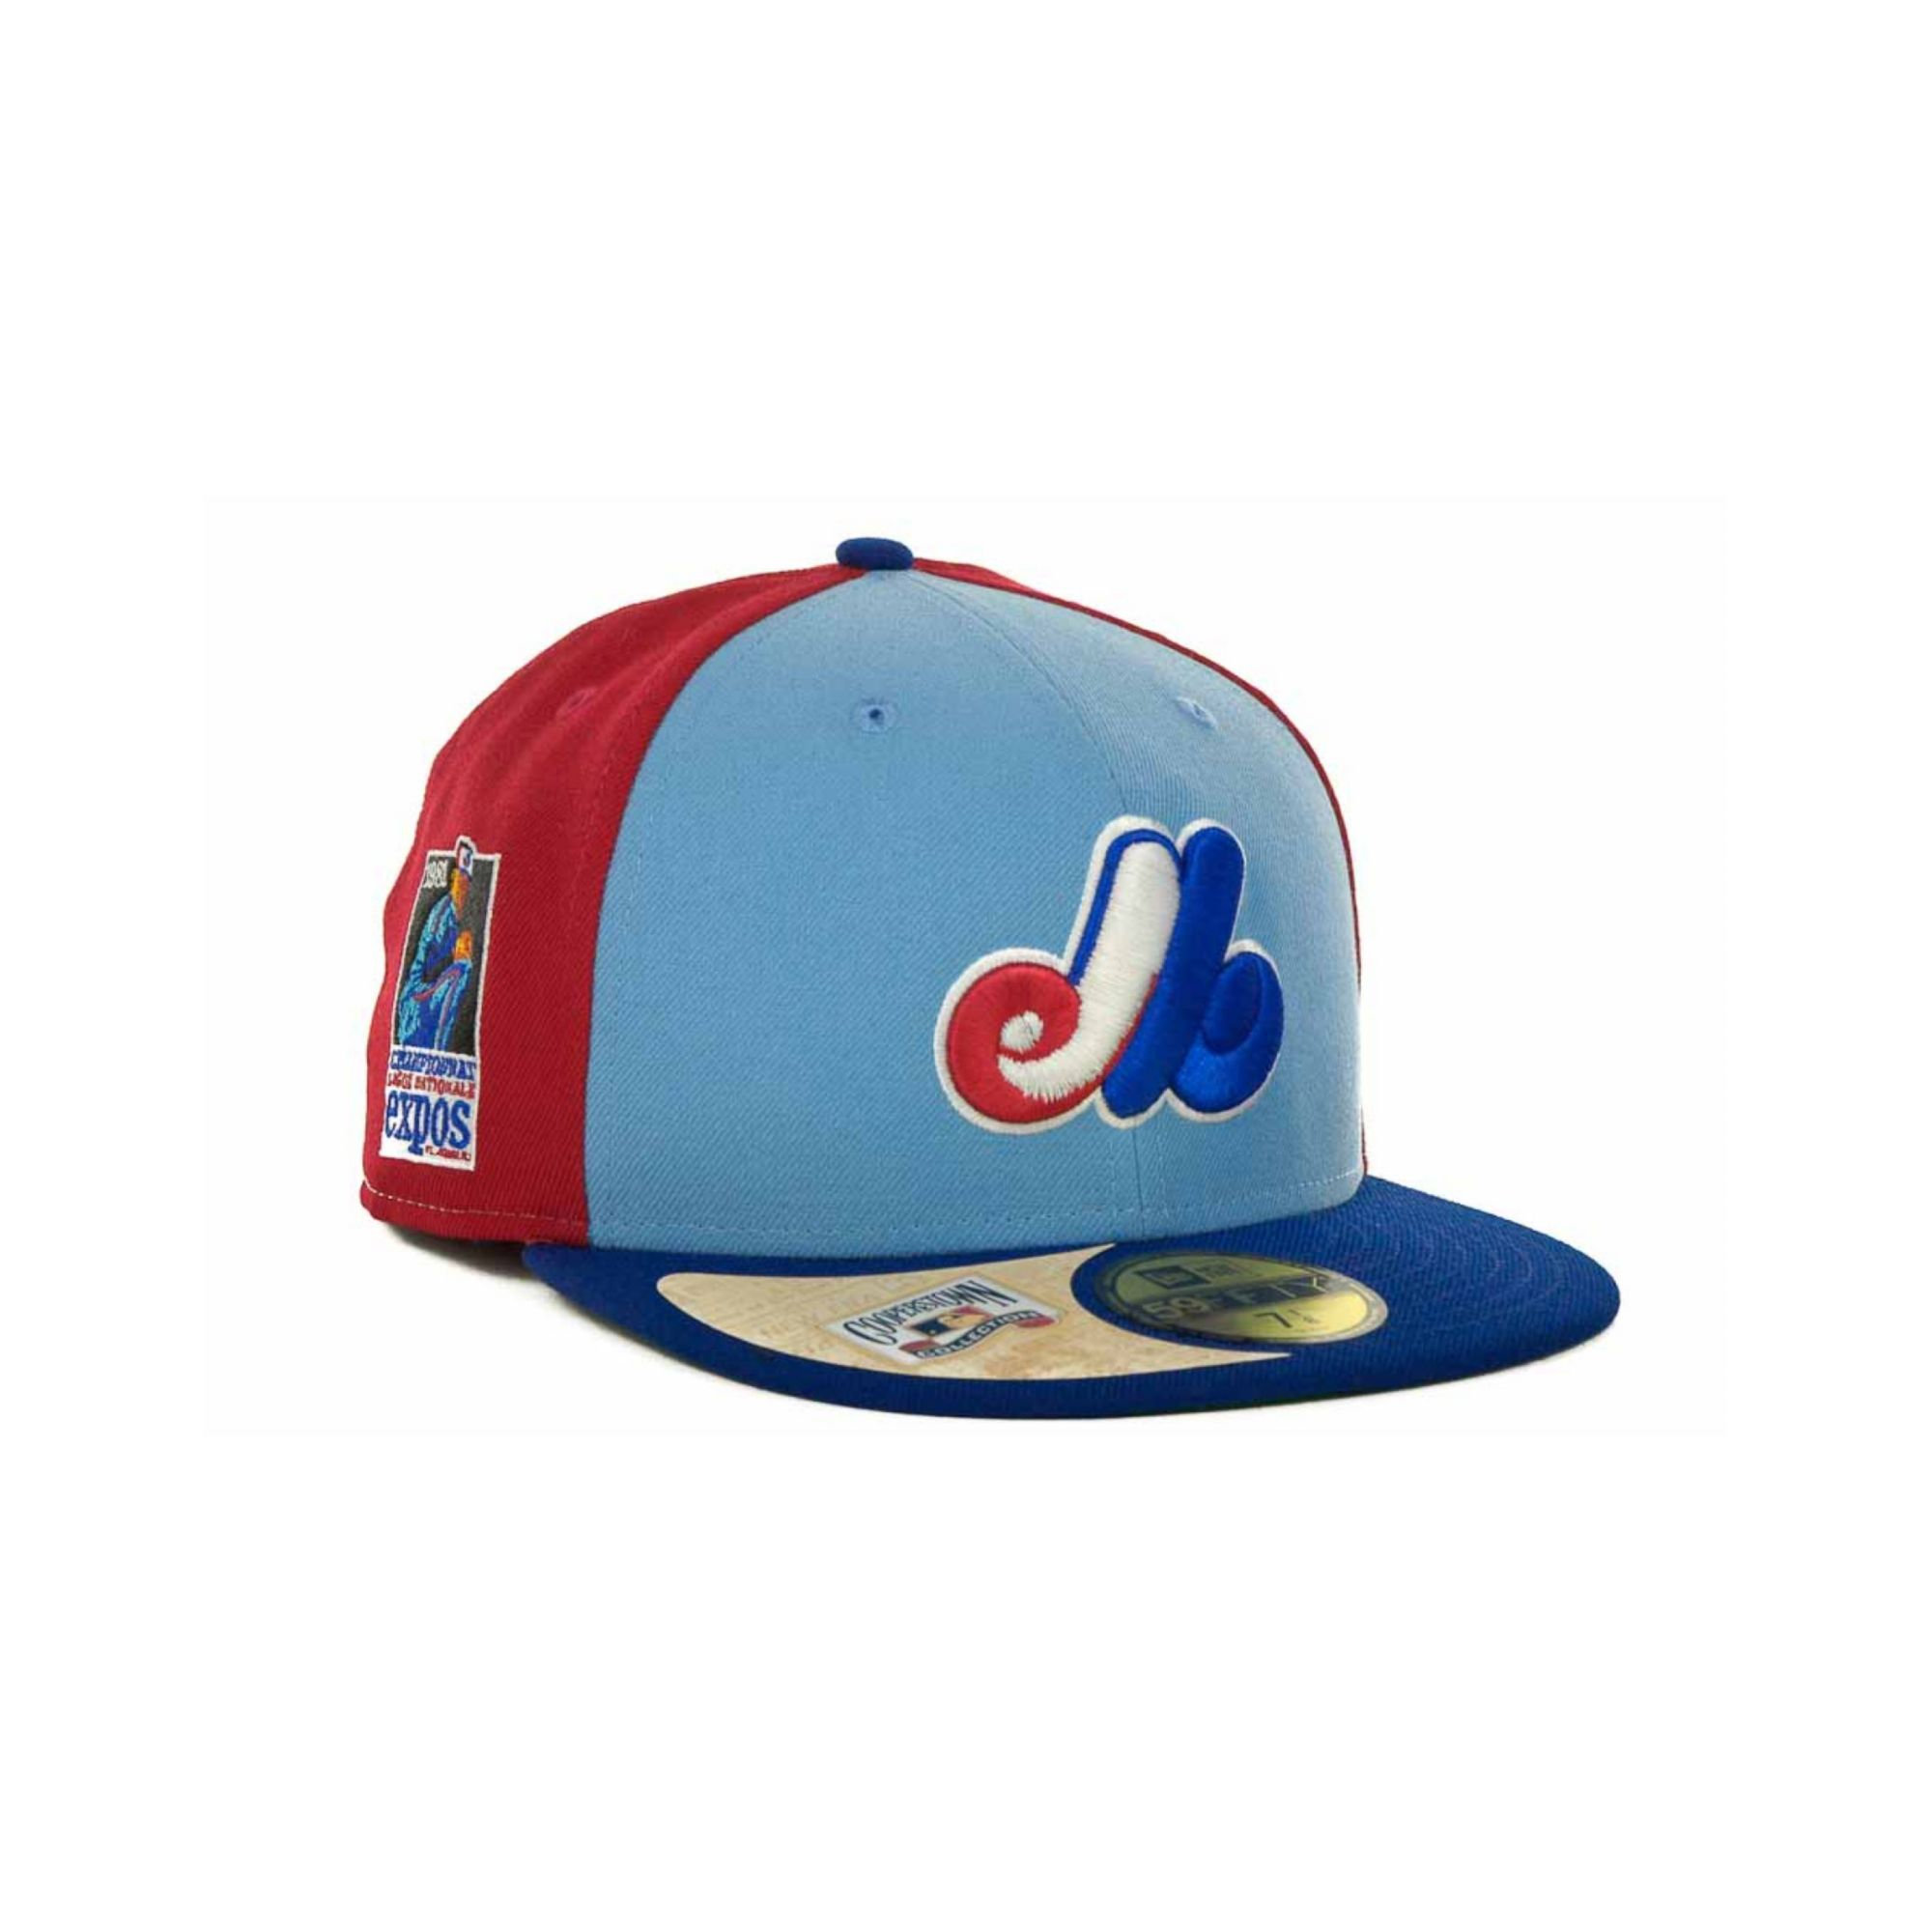 Lyst - KTZ Montreal Expos Cooperstown Patch 59fifty Cap in Blue for Men 7f78ab8e0427